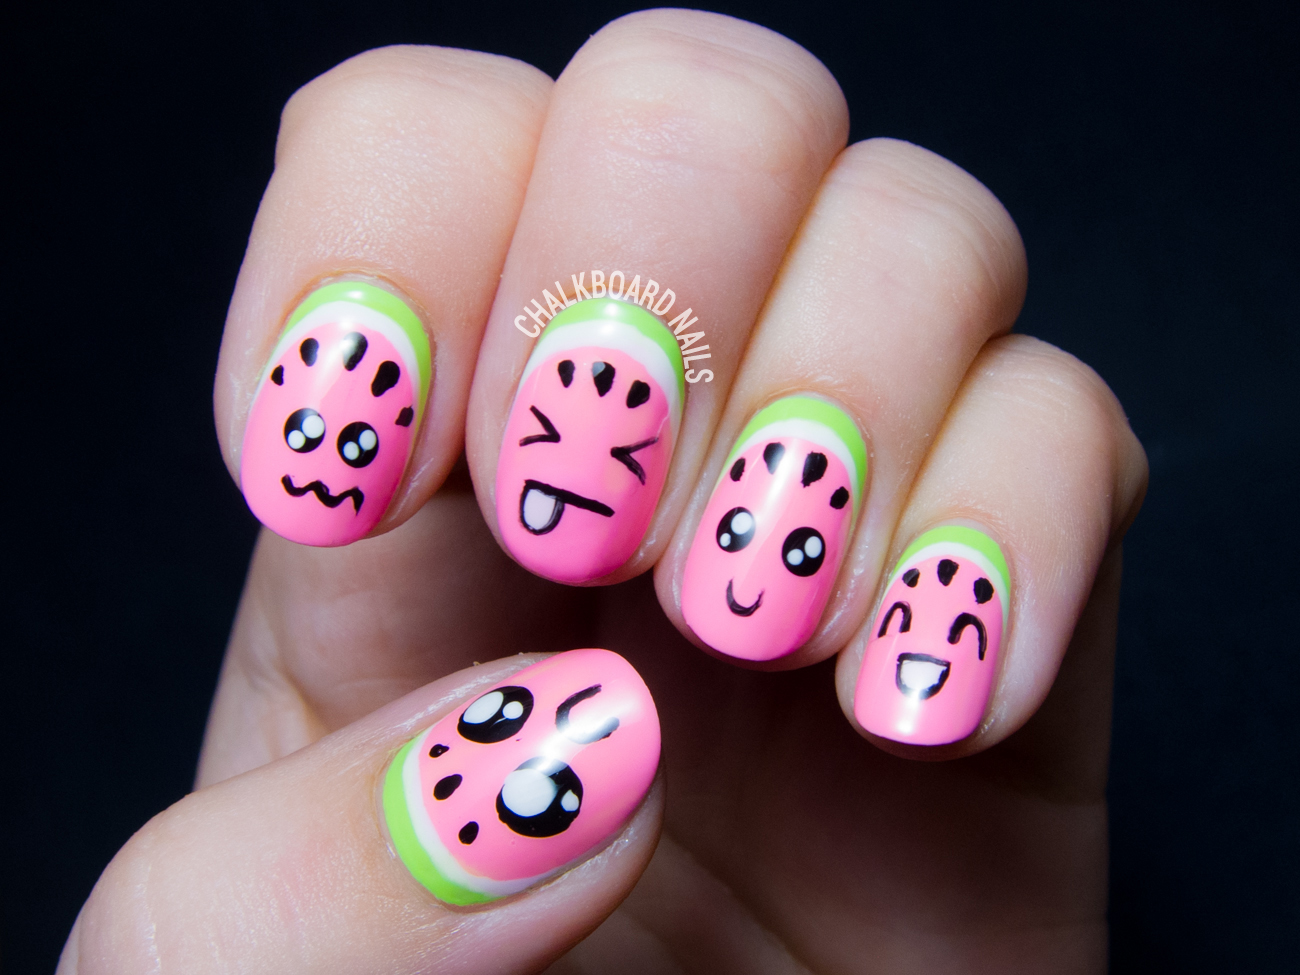 Kawaii watermelon nail art by @chalkboardnails - Kawaii Watermelons, Or How To Make Your Fruit Cute Chalkboard